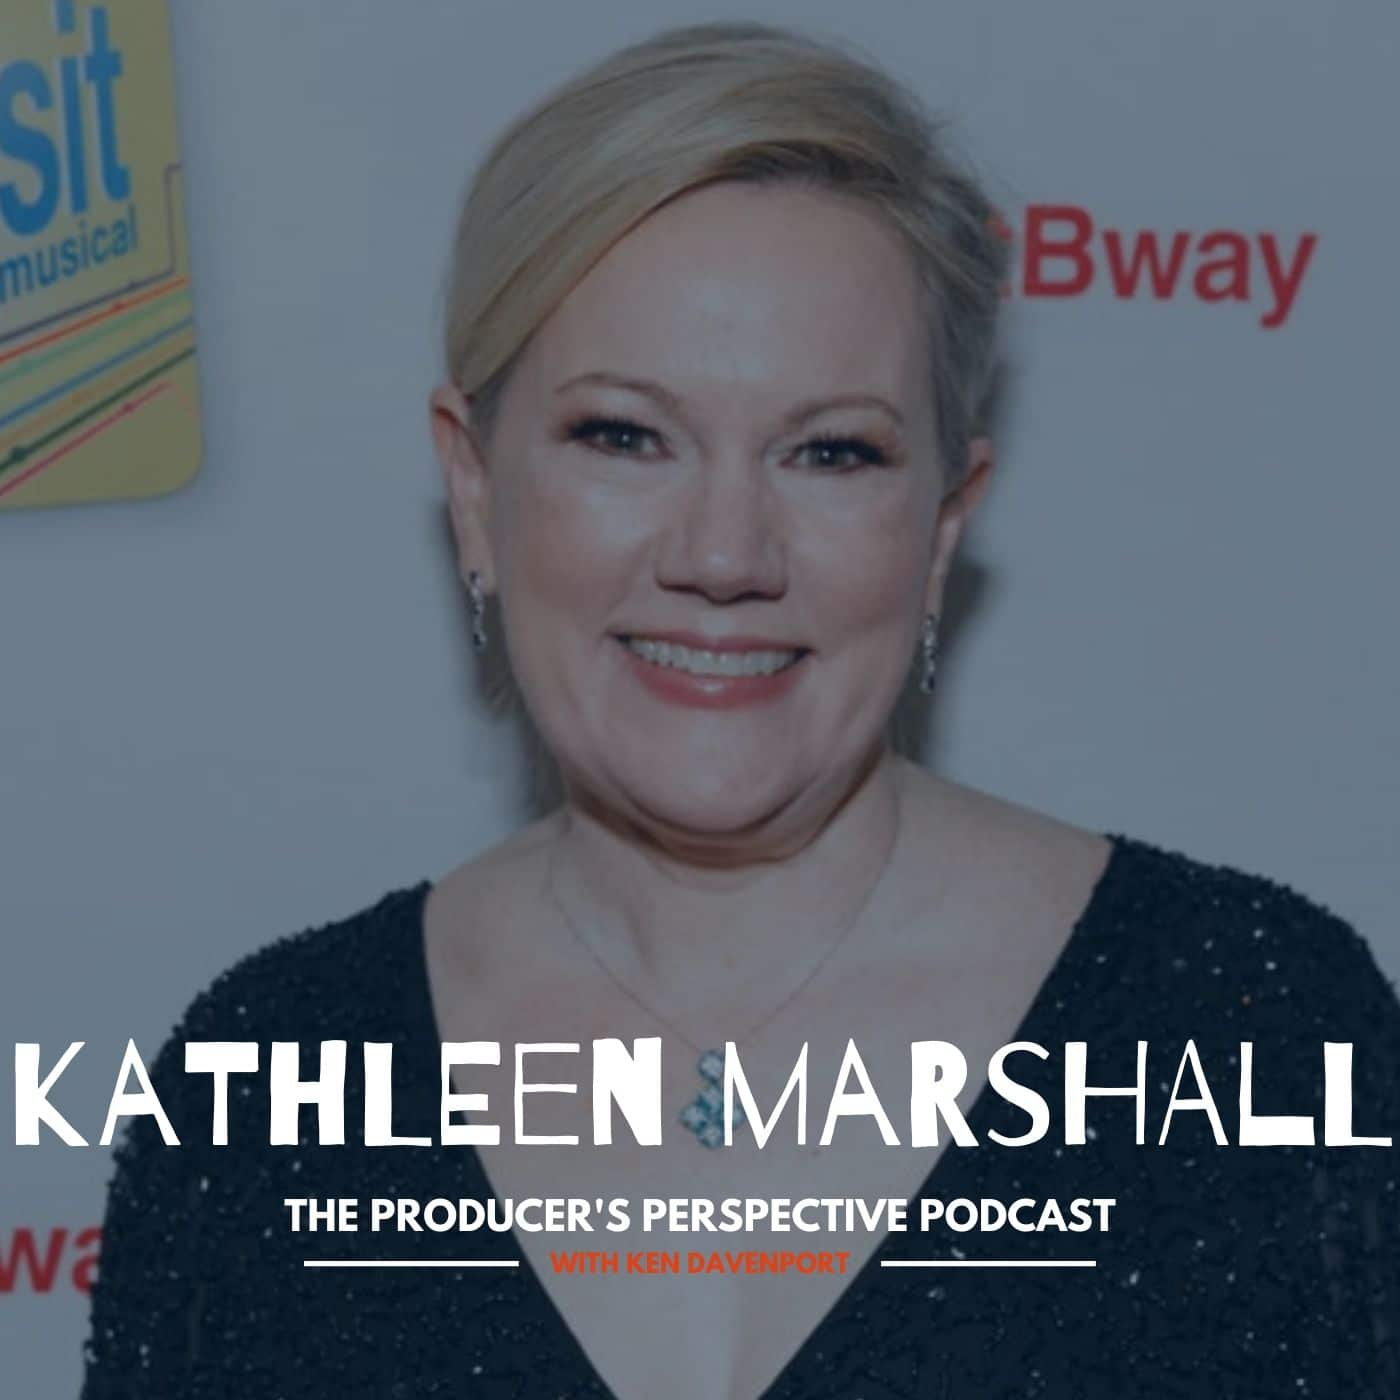 Ken Davenport's The Producer's Perspective Podcast Episode 113 - Kathleen Marshall